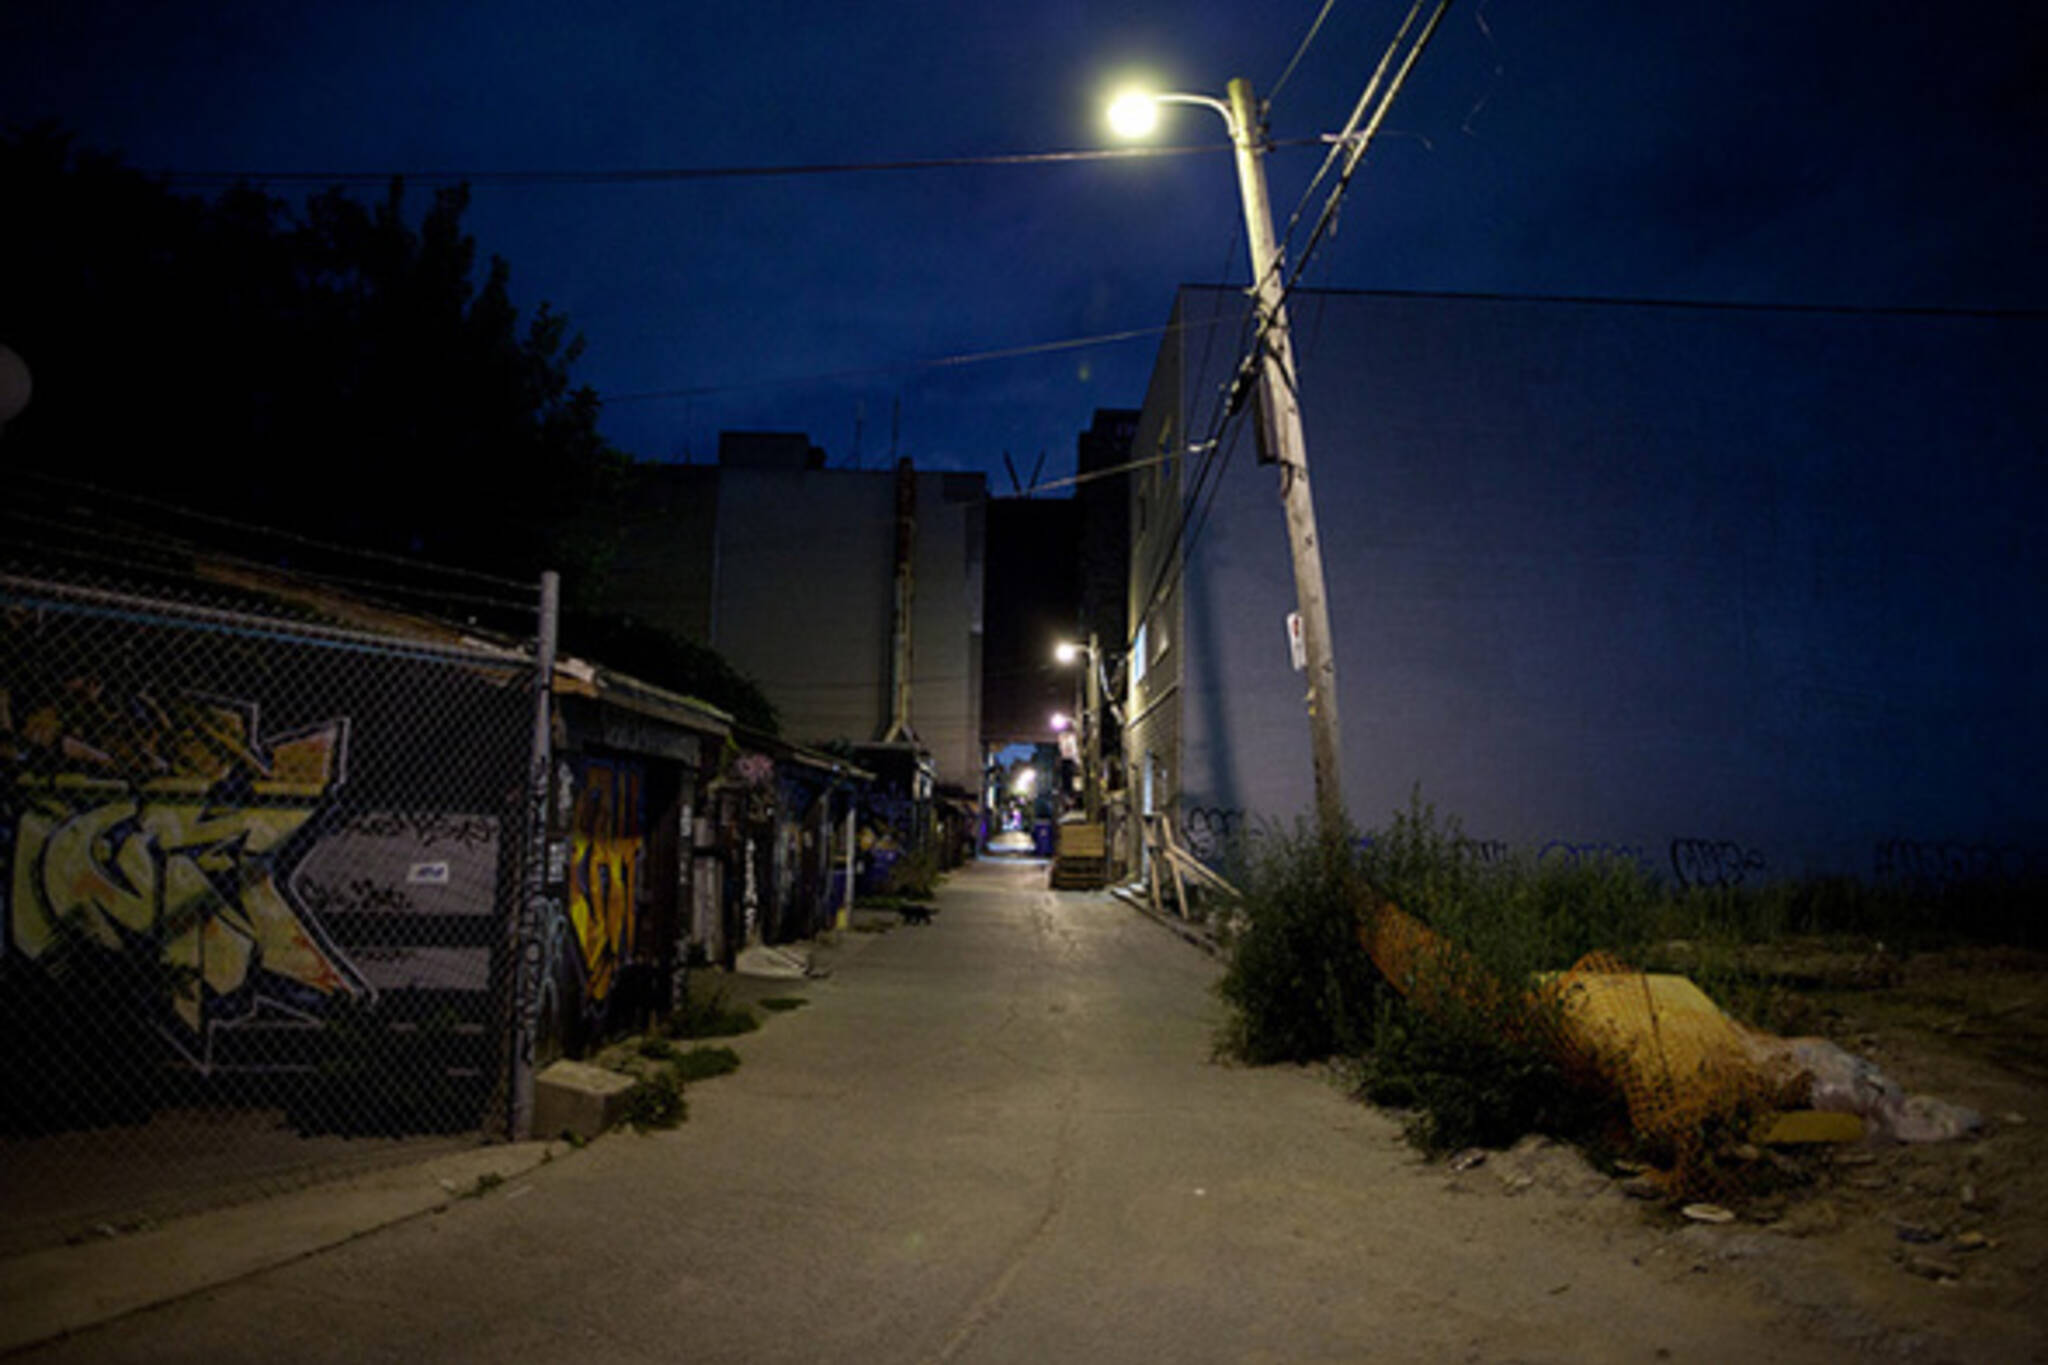 night, alley, dark